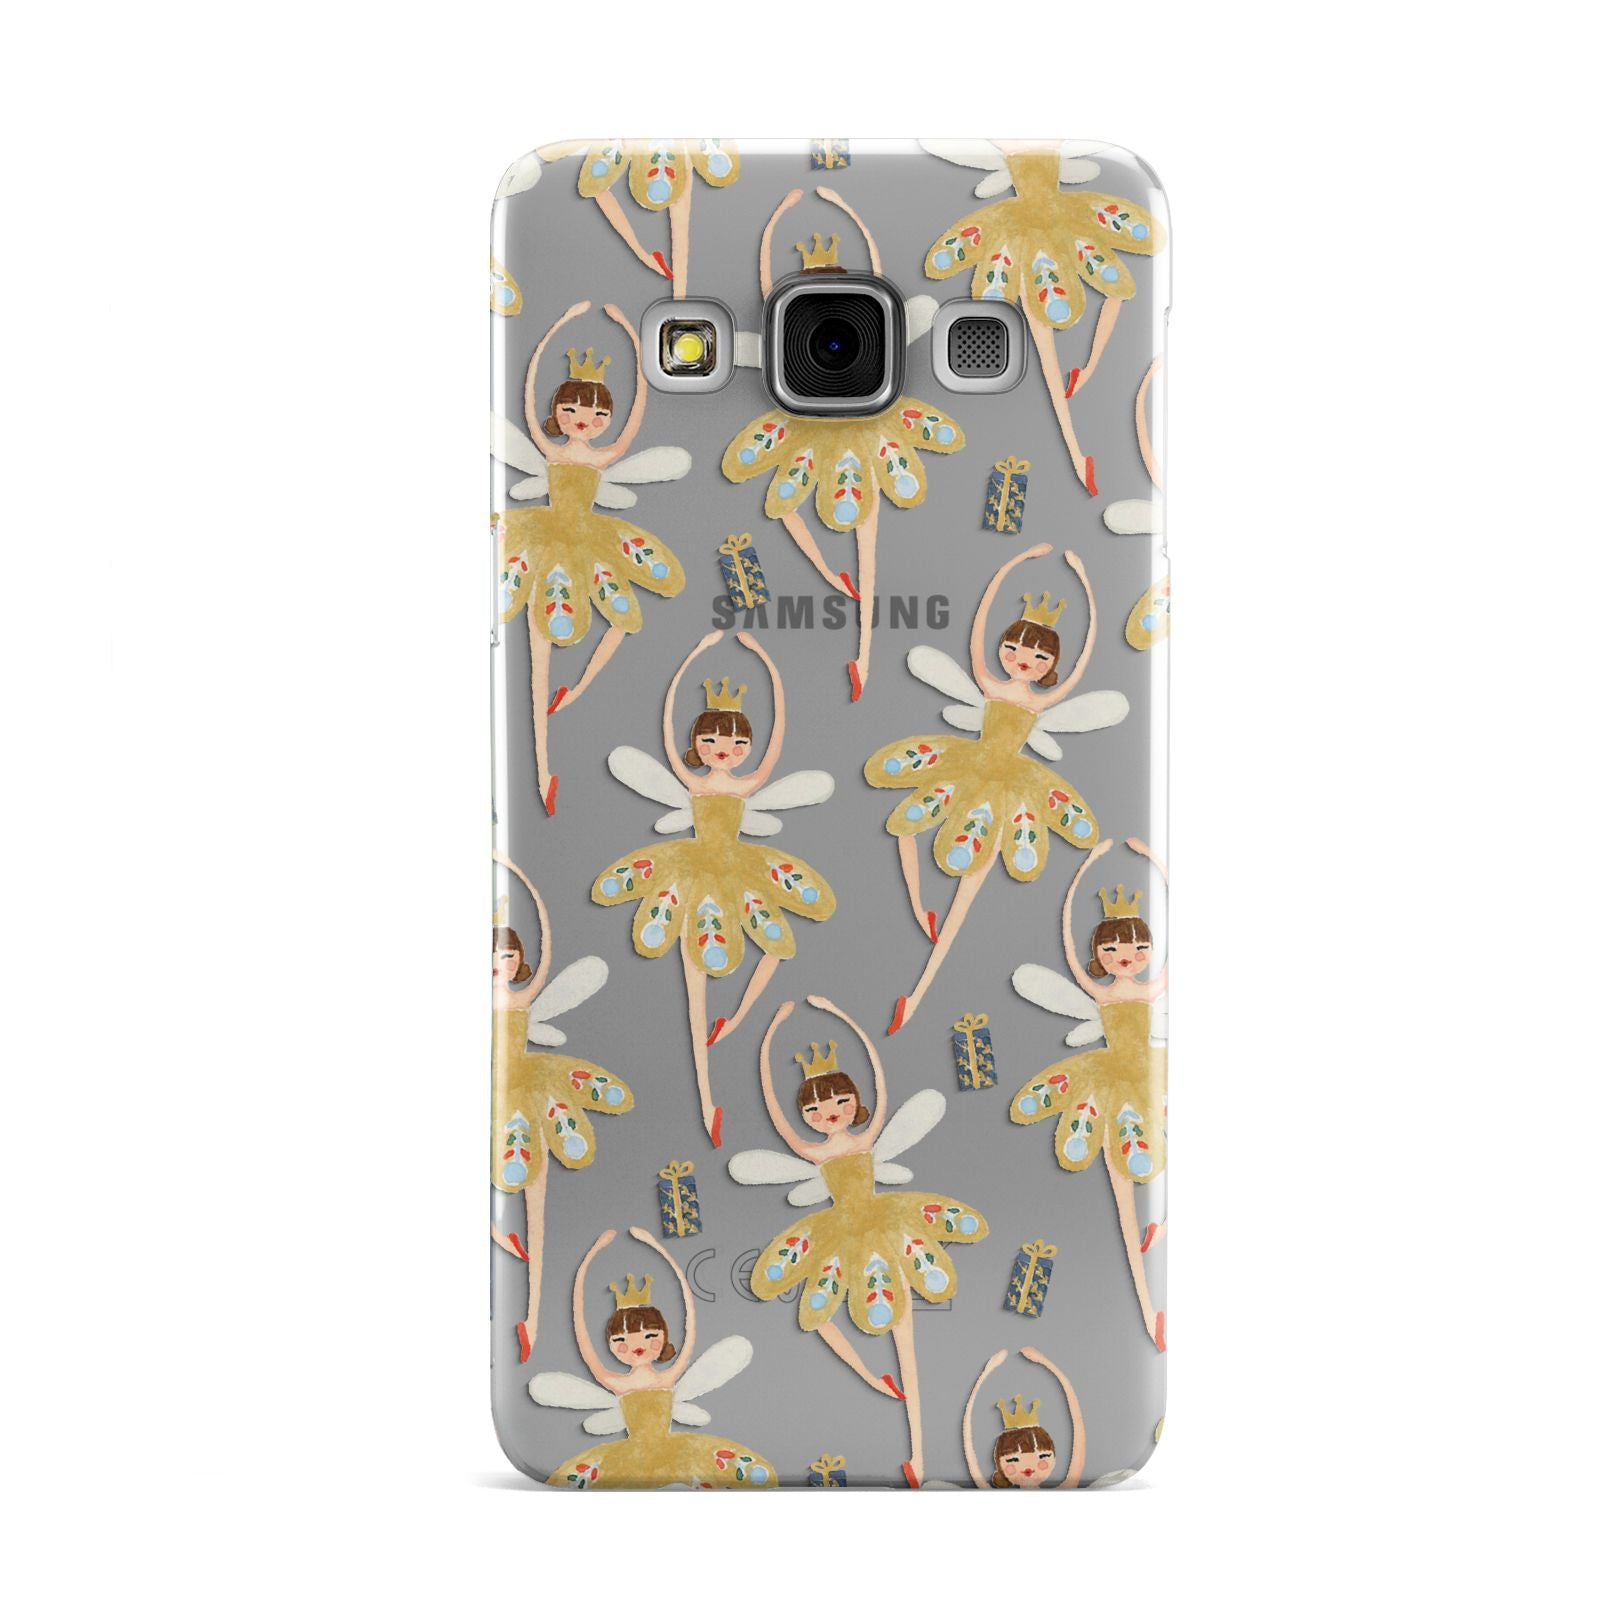 Dancing ballerina princess Samsung Galaxy A3 Case